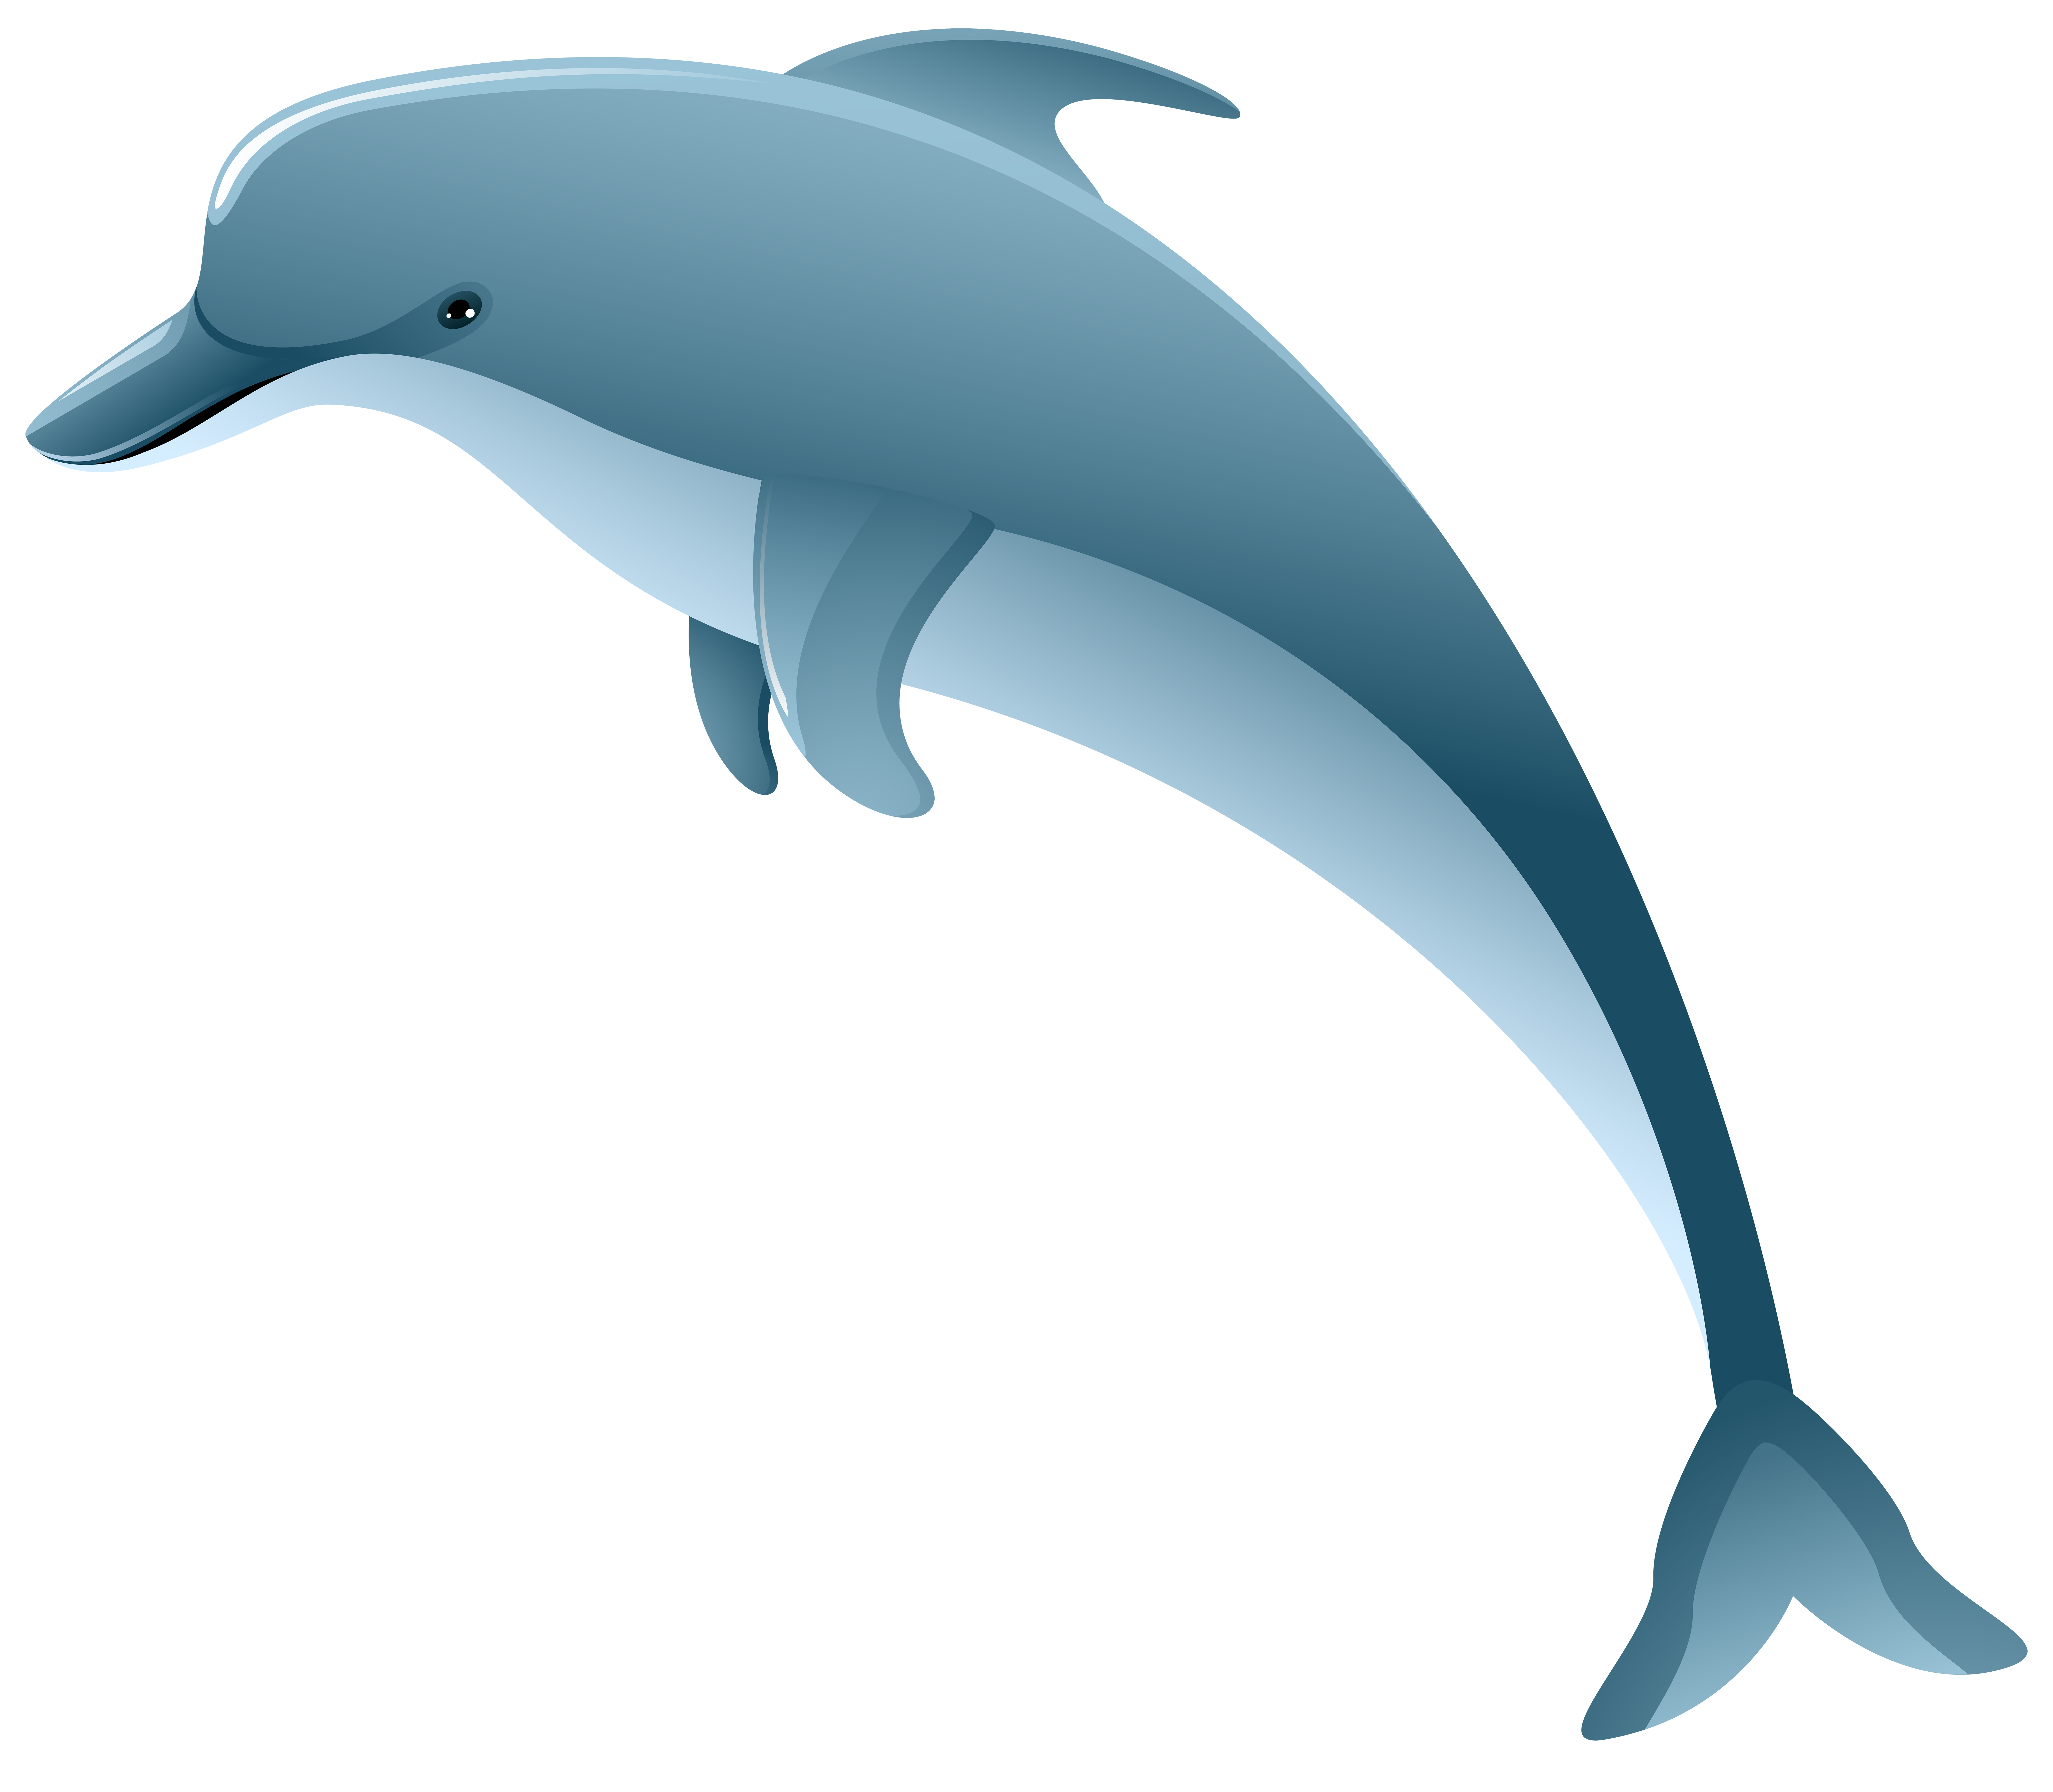 Winter dolphin valentines clipart image library Dolphin PNG Clip Art Image | Gallery Yopriceville - High ... image library